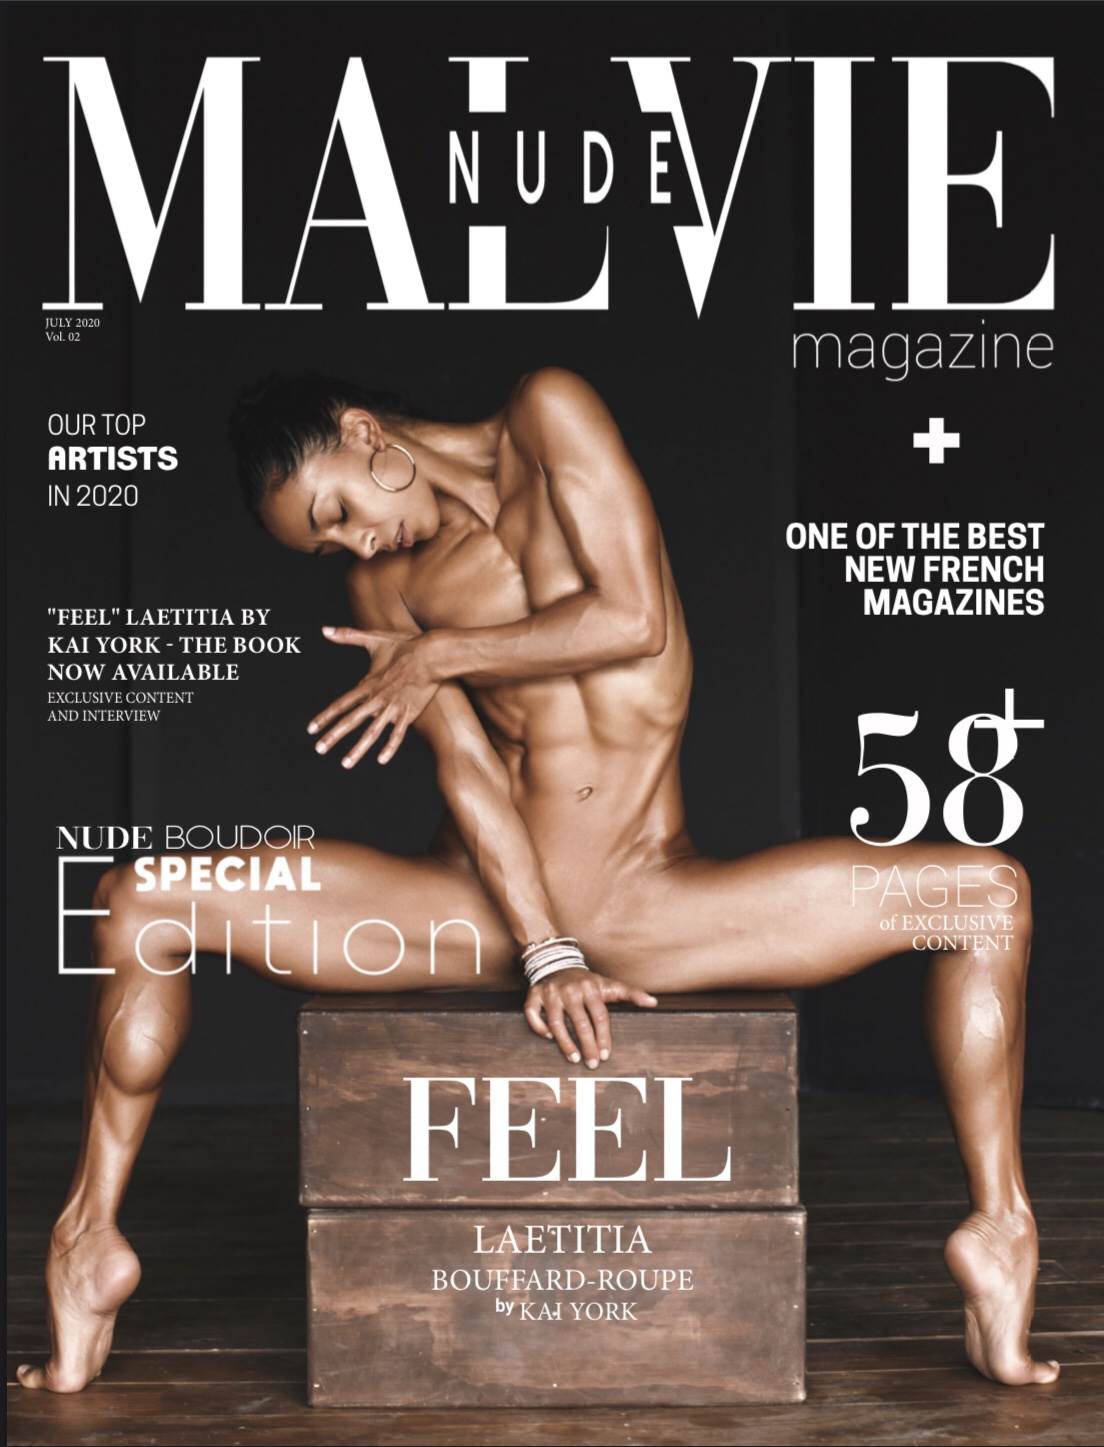 Malvie Nude Magazine July 2020 - Cover @kai.york.official